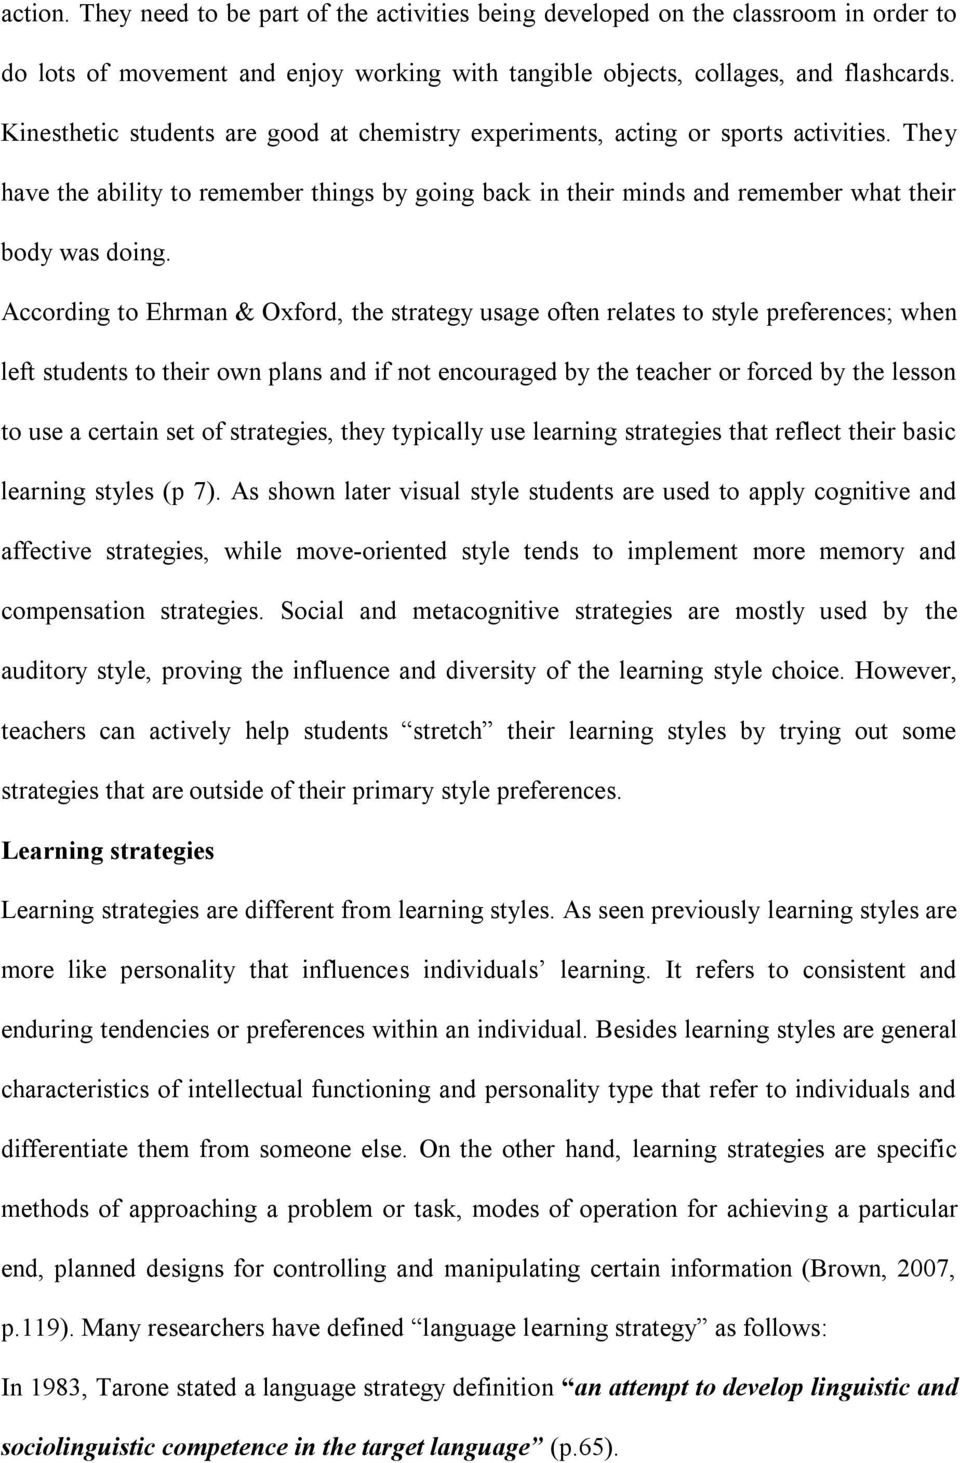 According to Ehrman & Oxford, the strategy usage often relates to style preferences; when left students to their own plans and if not encouraged by the teacher or forced by the lesson to use a